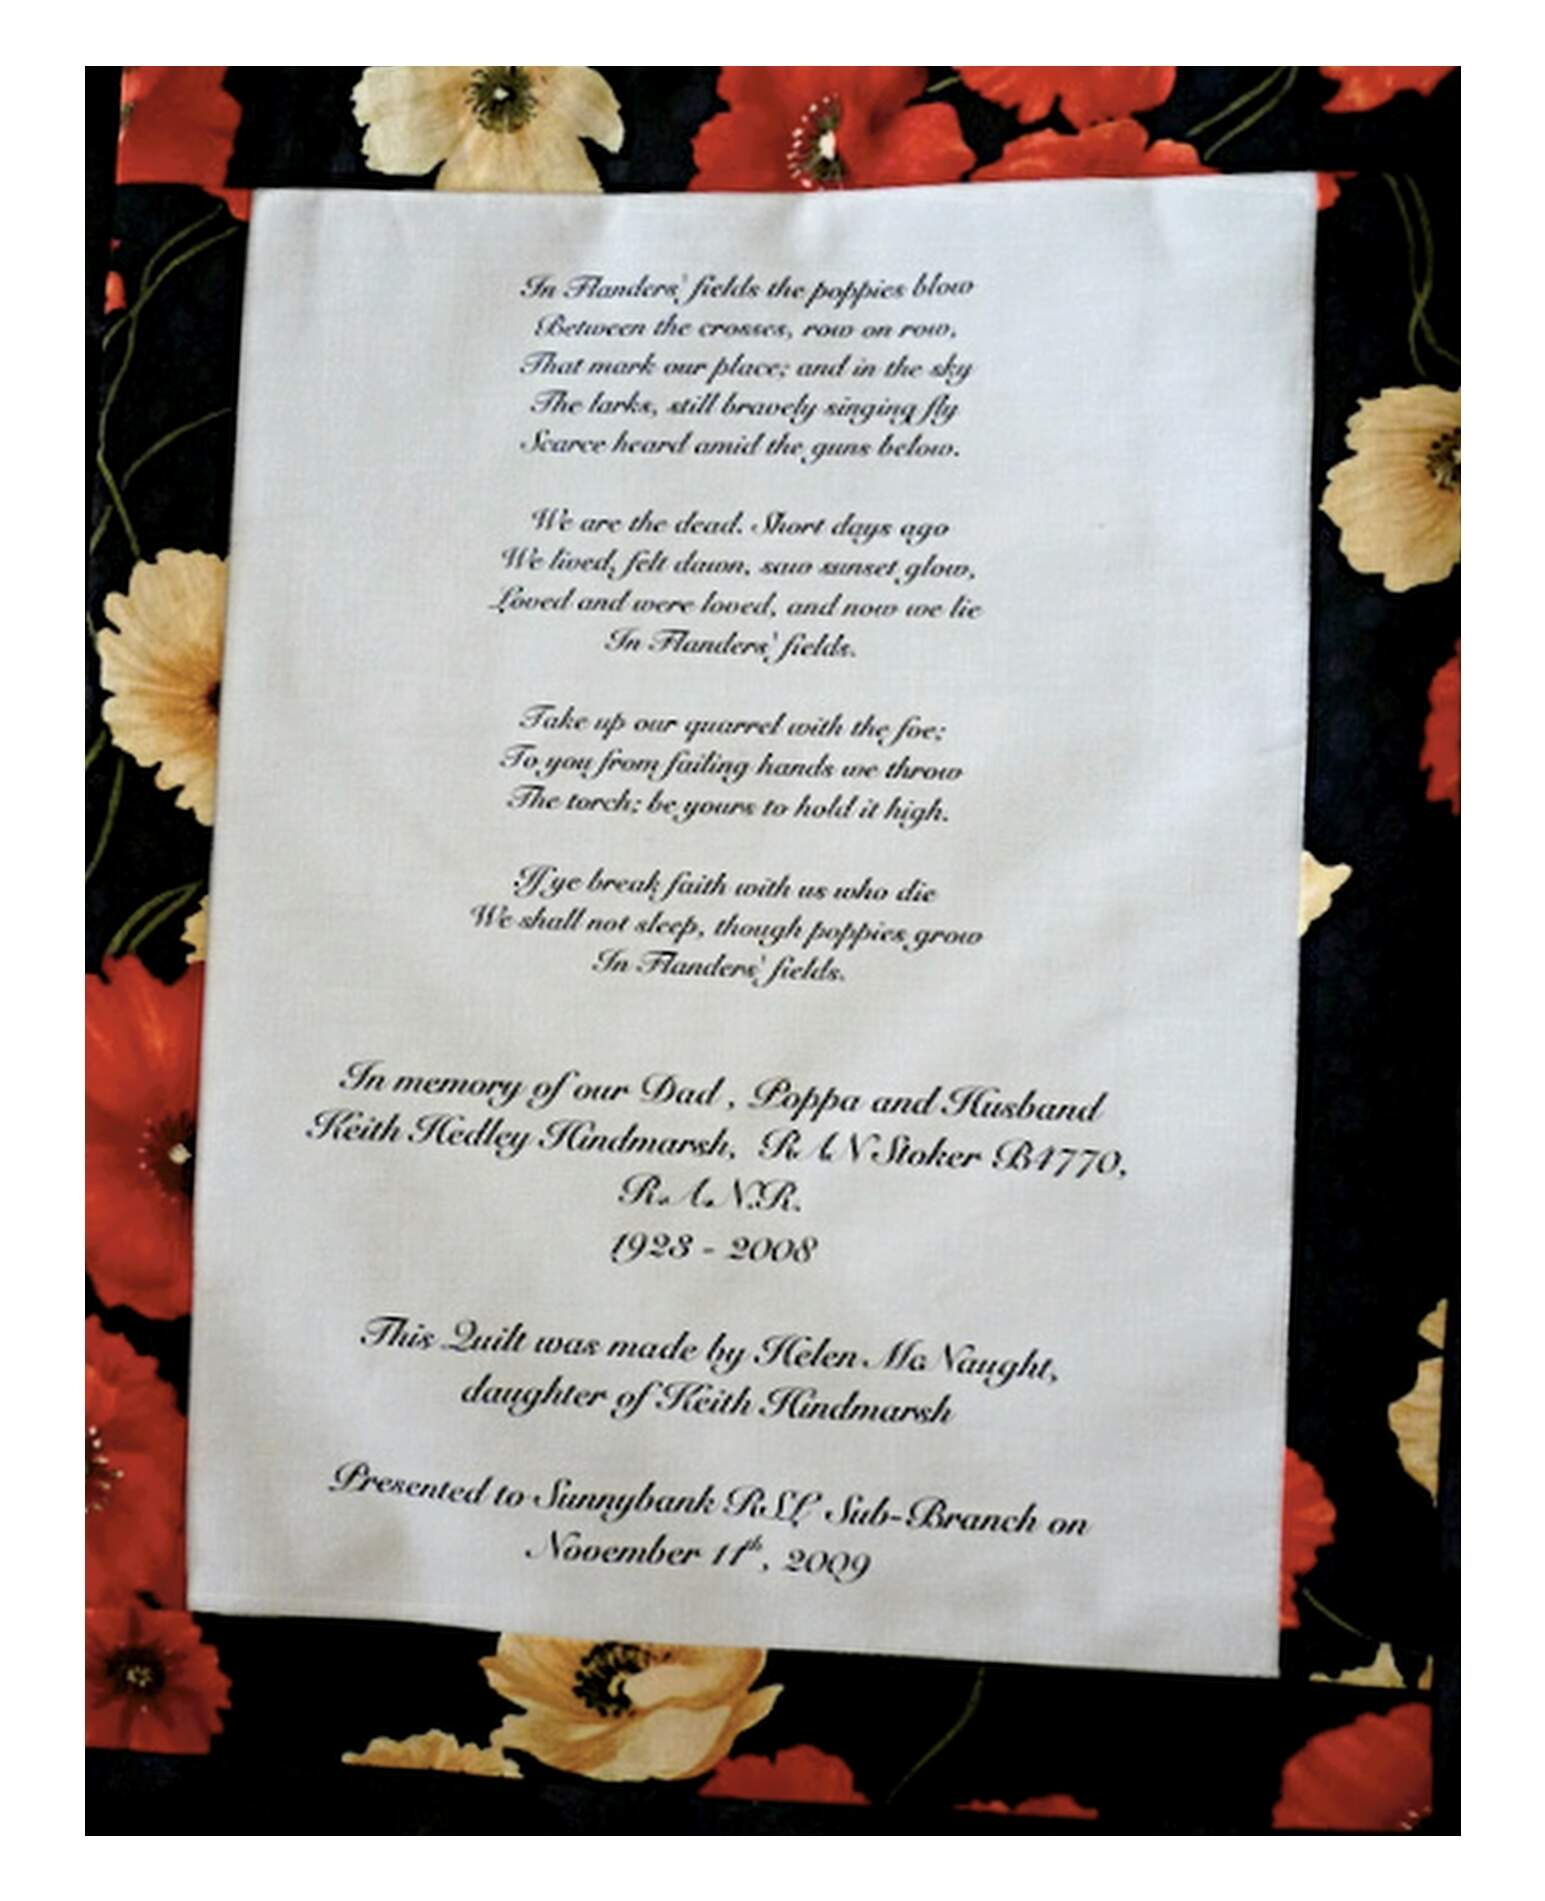 quilt-label-with-poem